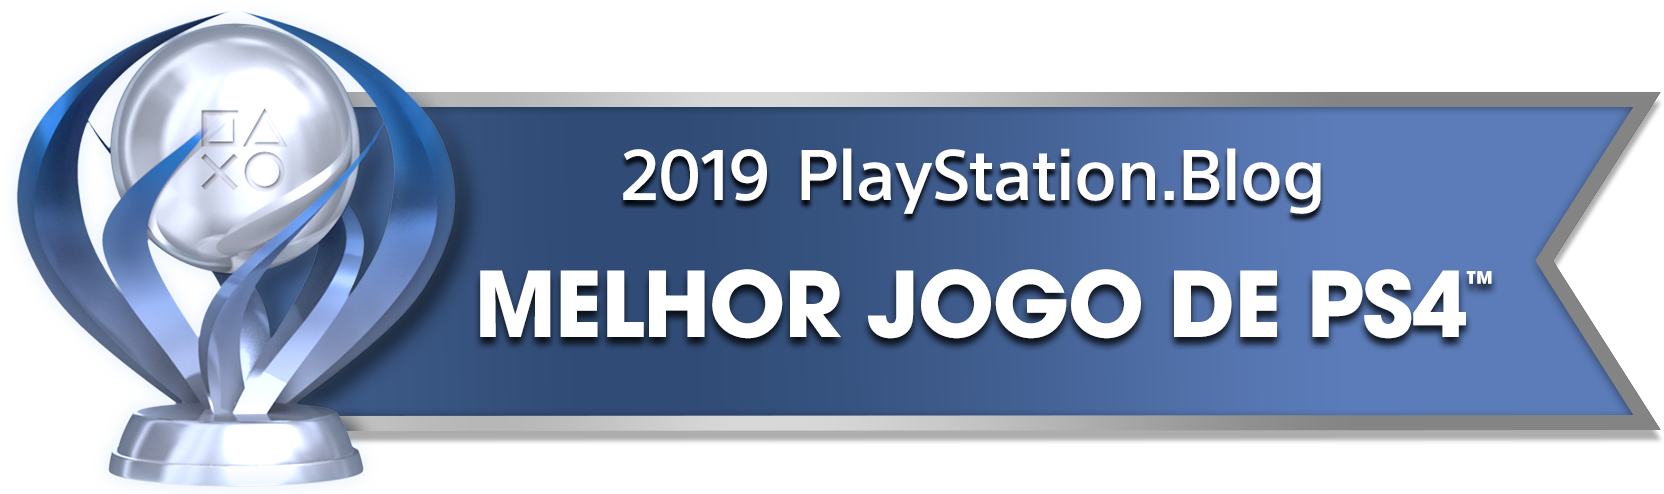 PS Blog Game of the Year 2019 - Best PS4 Game - 1 - Platinum